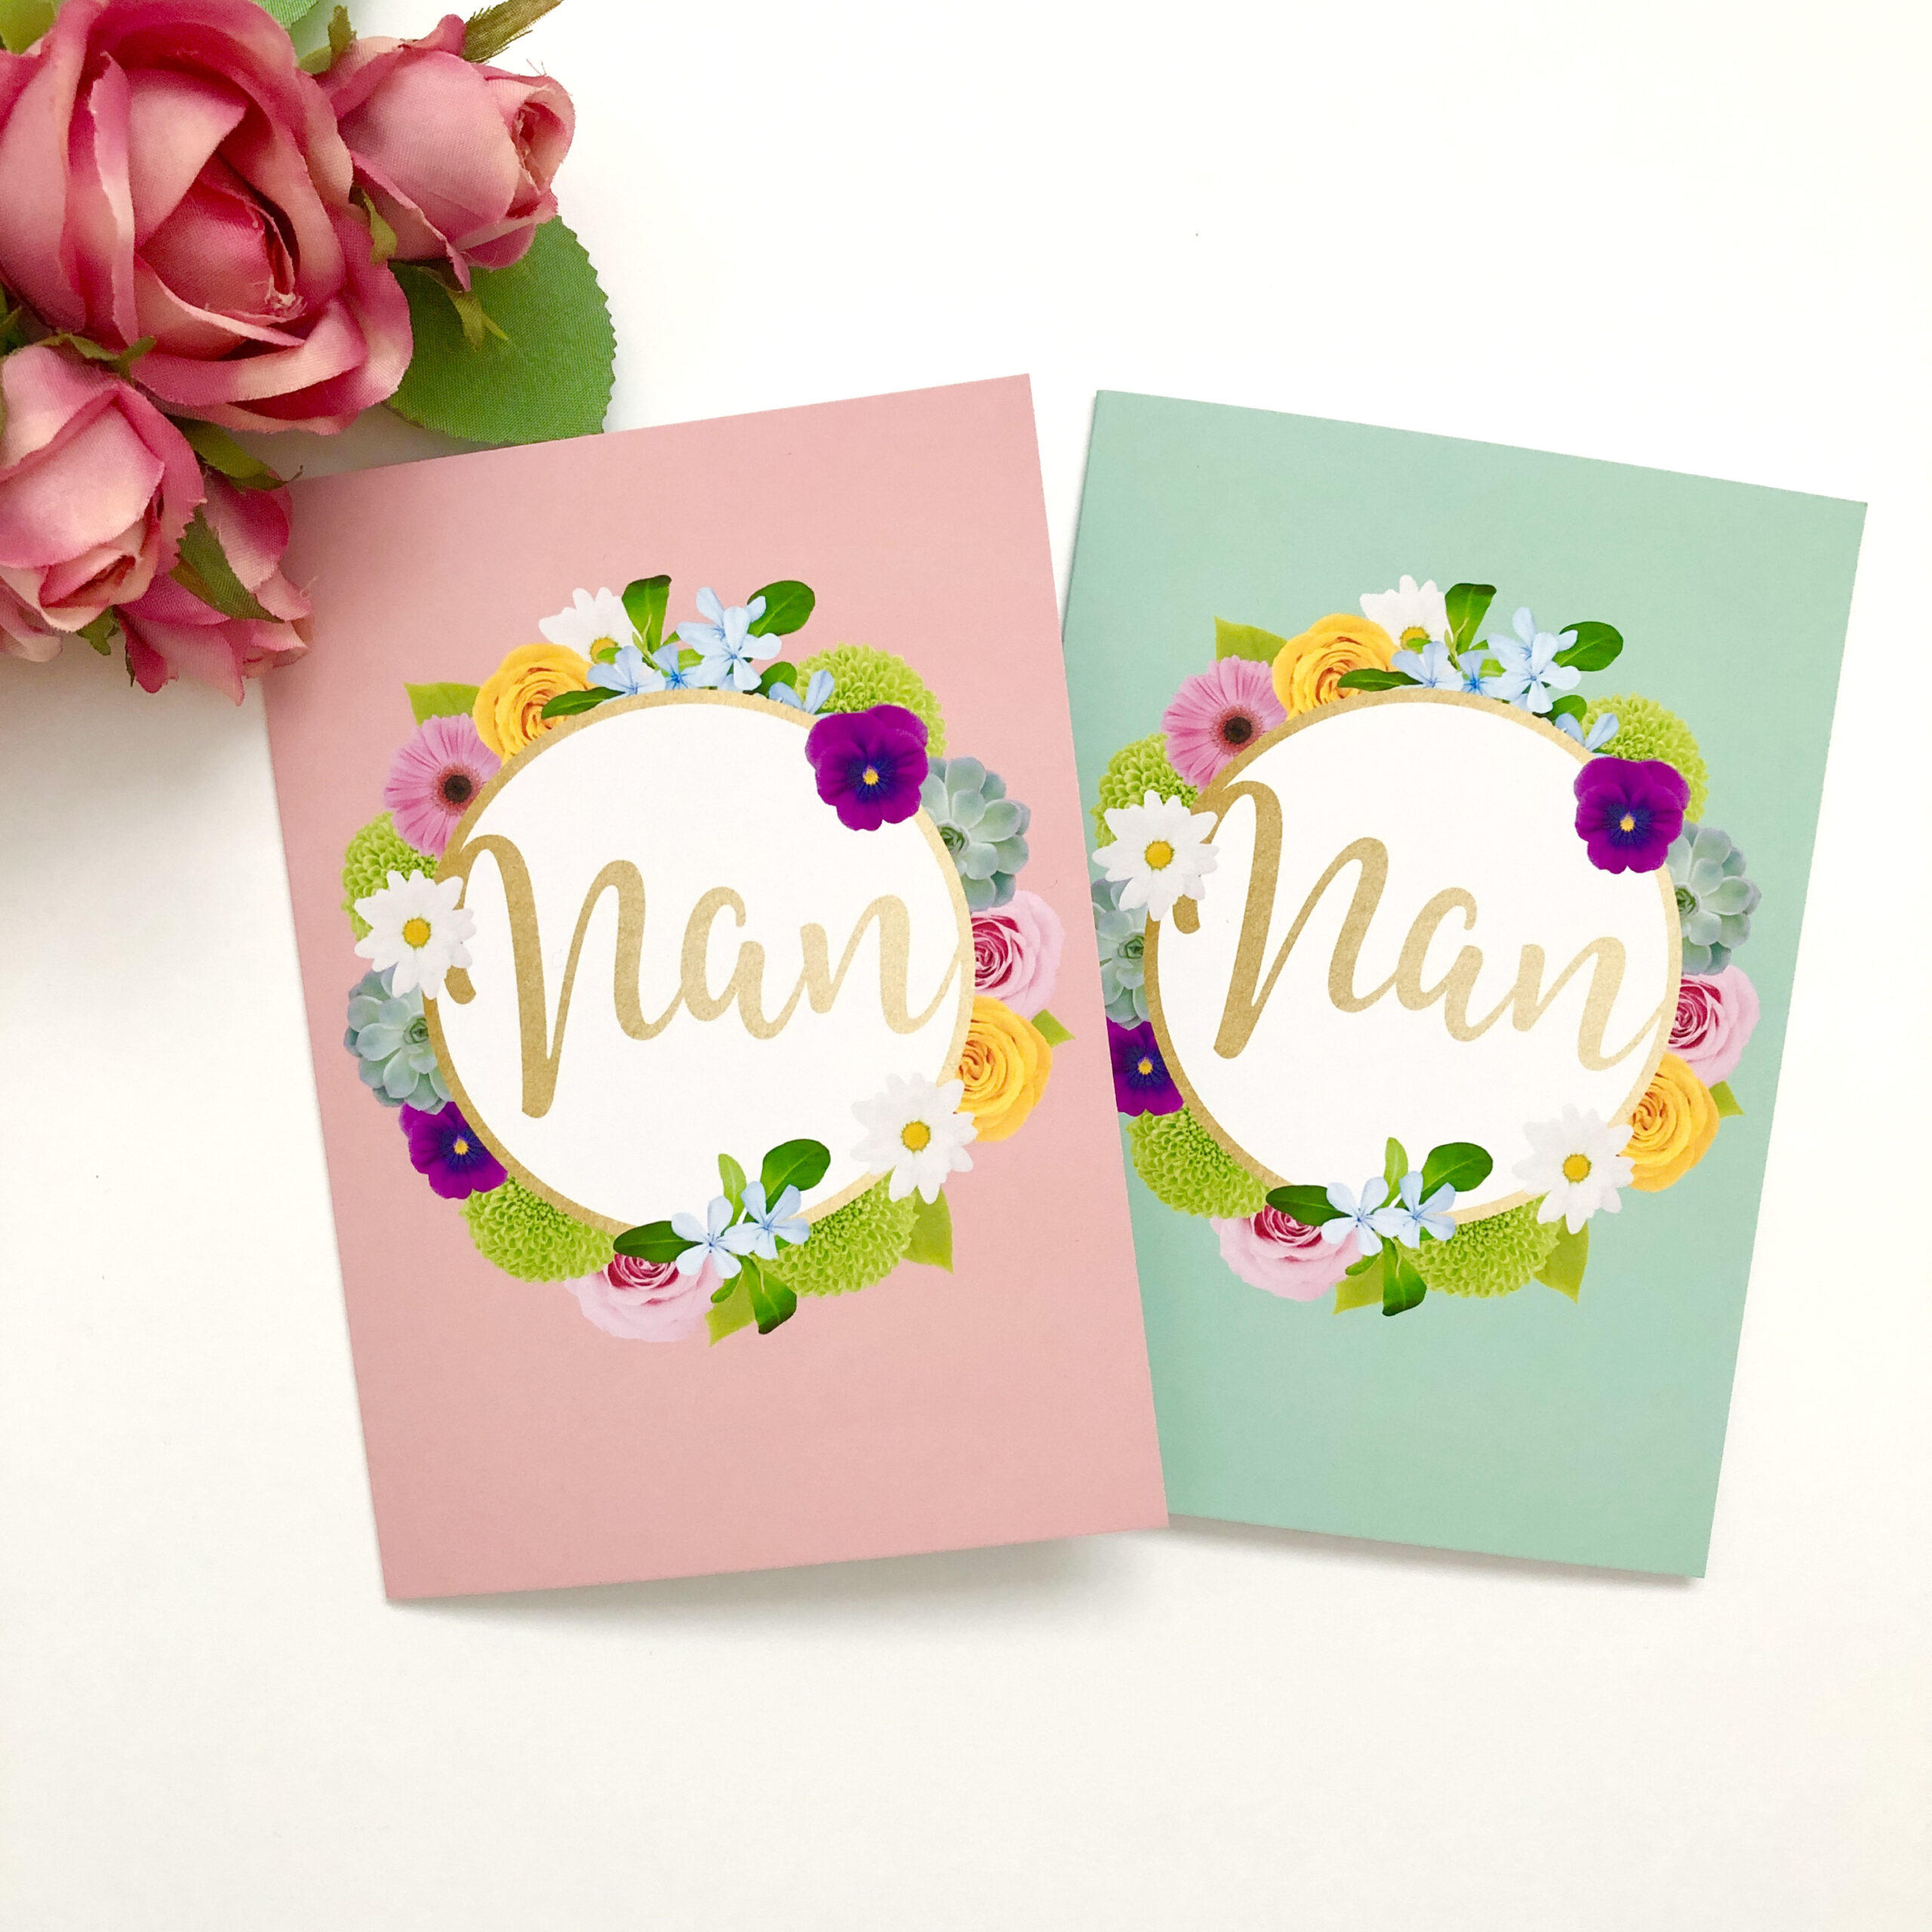 Two greetings cards for nan, both featuring colourful flowers, faux gold lettering with one on a pink background and the other on a green background